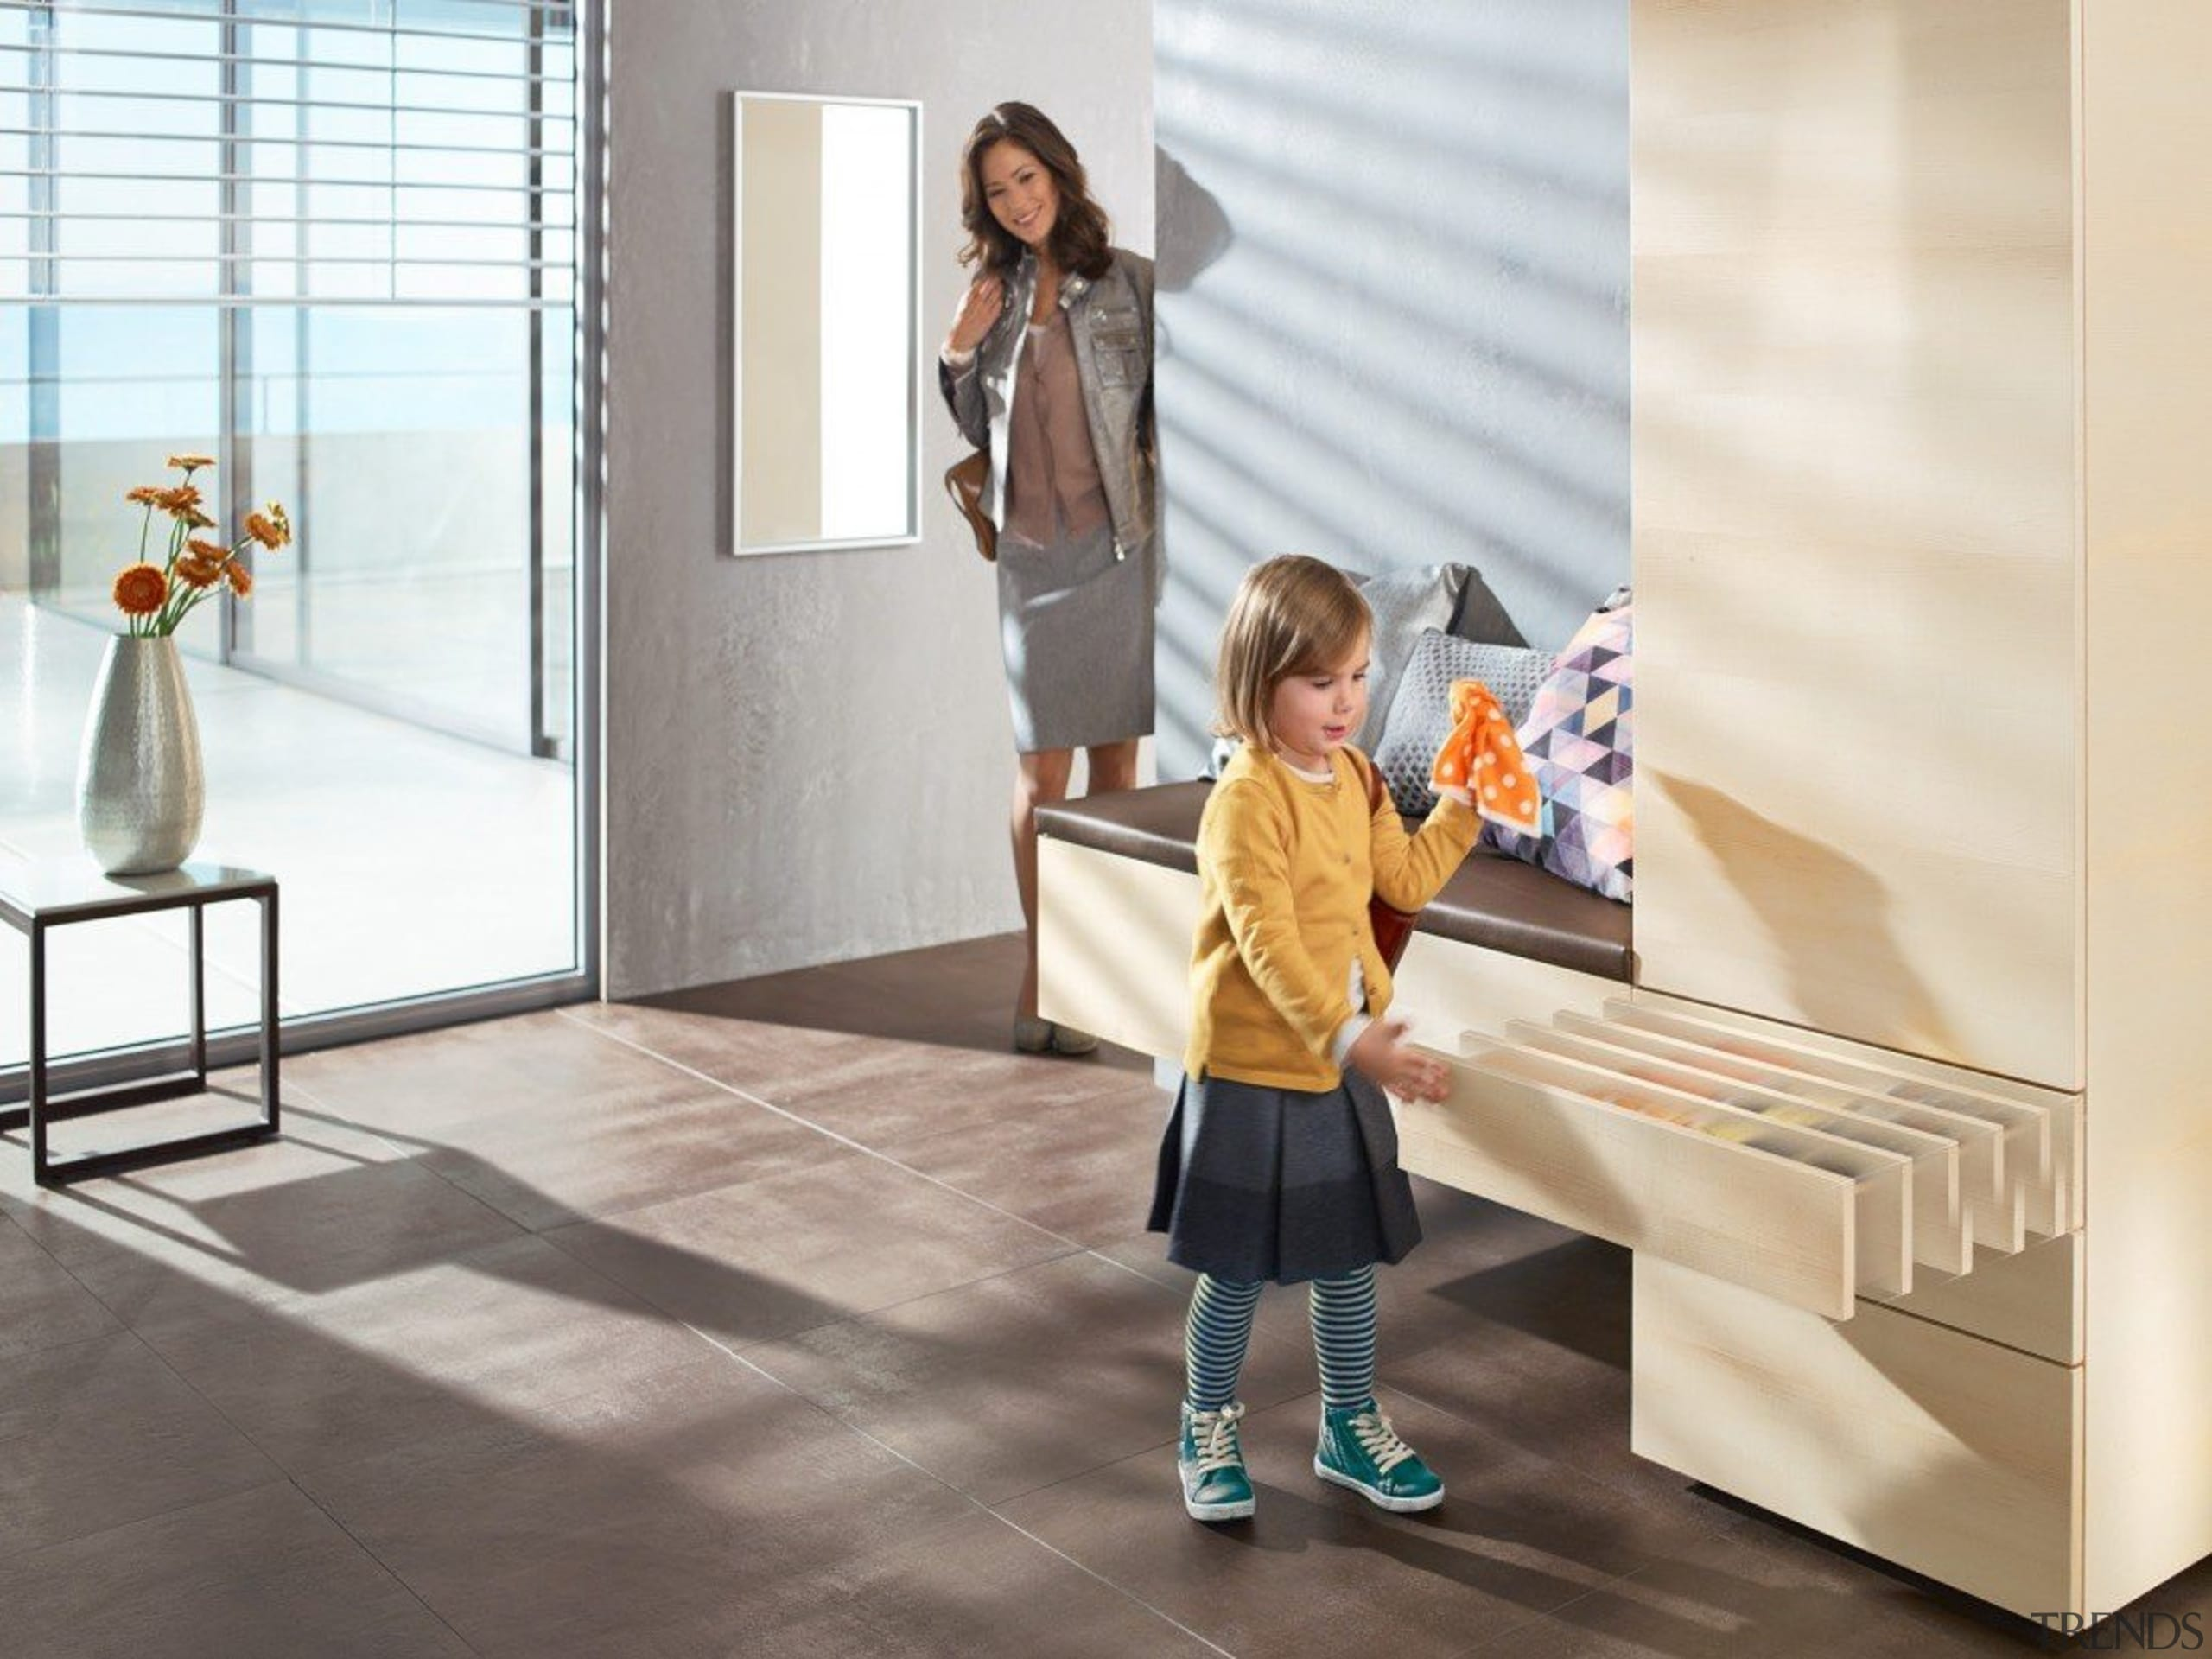 TIP-ON BLUMOTION for MOVENTO combines the advantages of floor, flooring, furniture, interior design, product, room, shoulder, standing, table, white